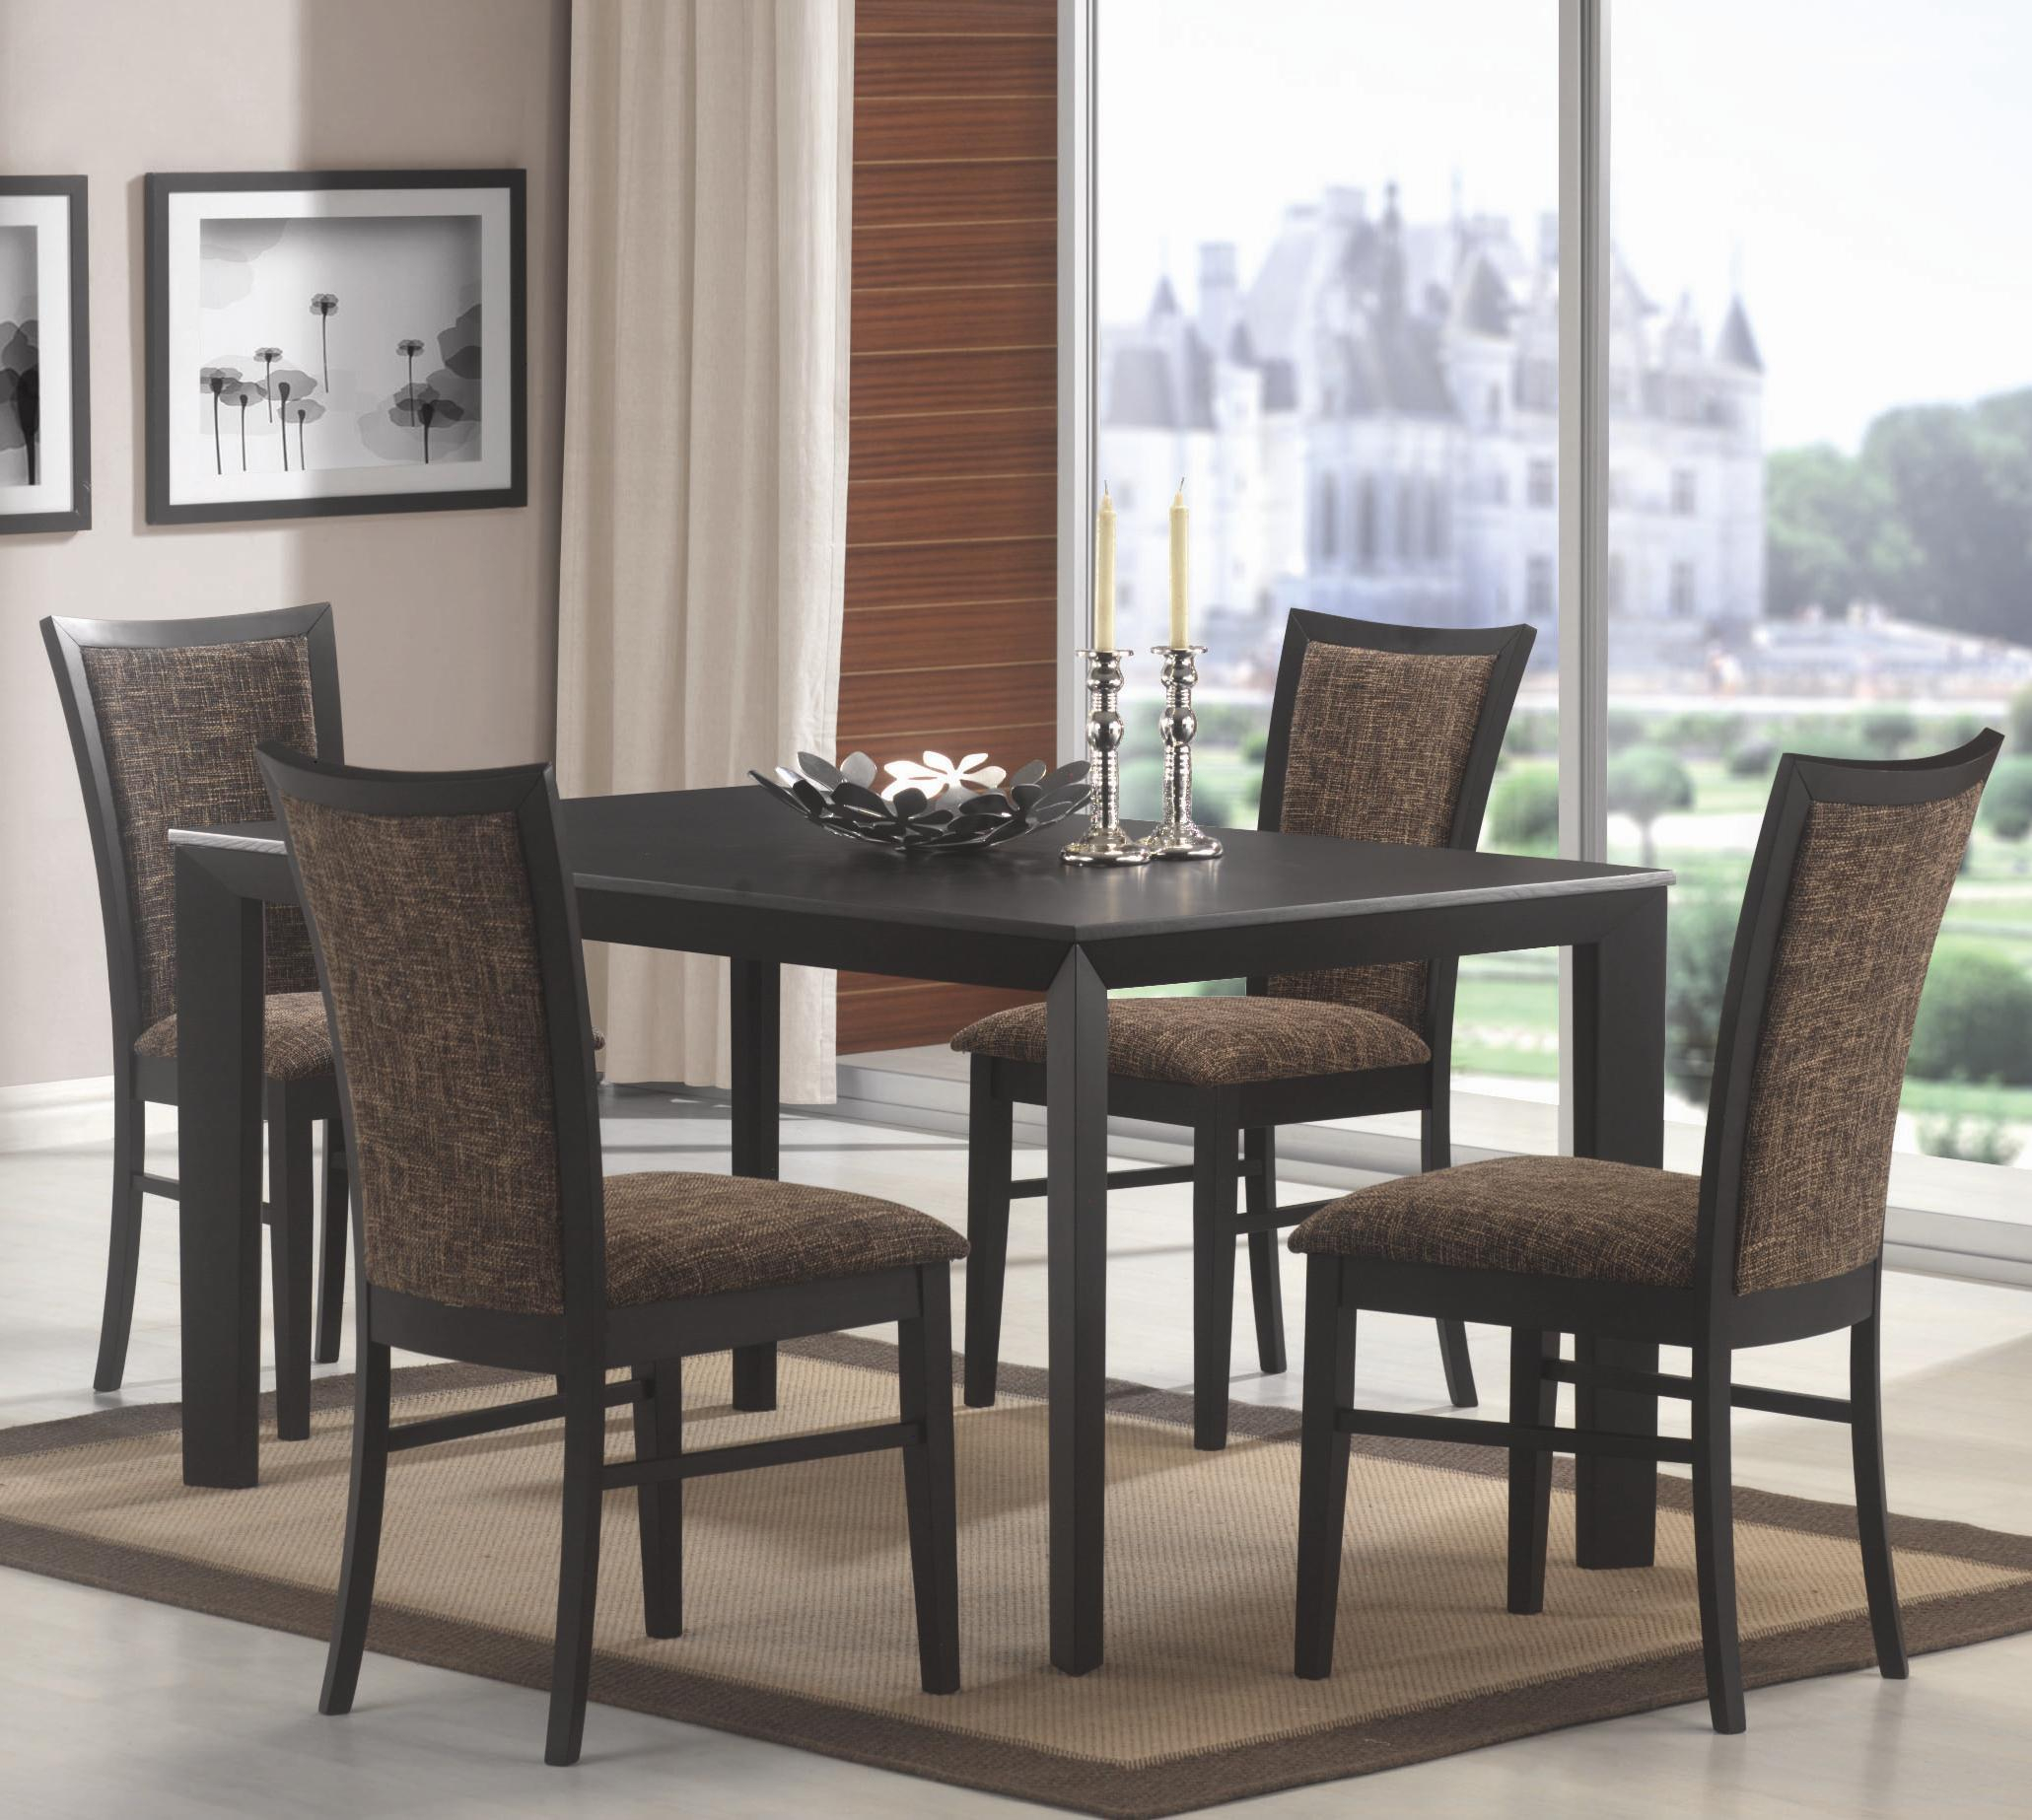 Santa Clara Furniture Store, San Jose Furniture Store, Sunnyvale Throughout Fashionable Anette 3 Piece Counter Height Dining Sets (#14 of 20)